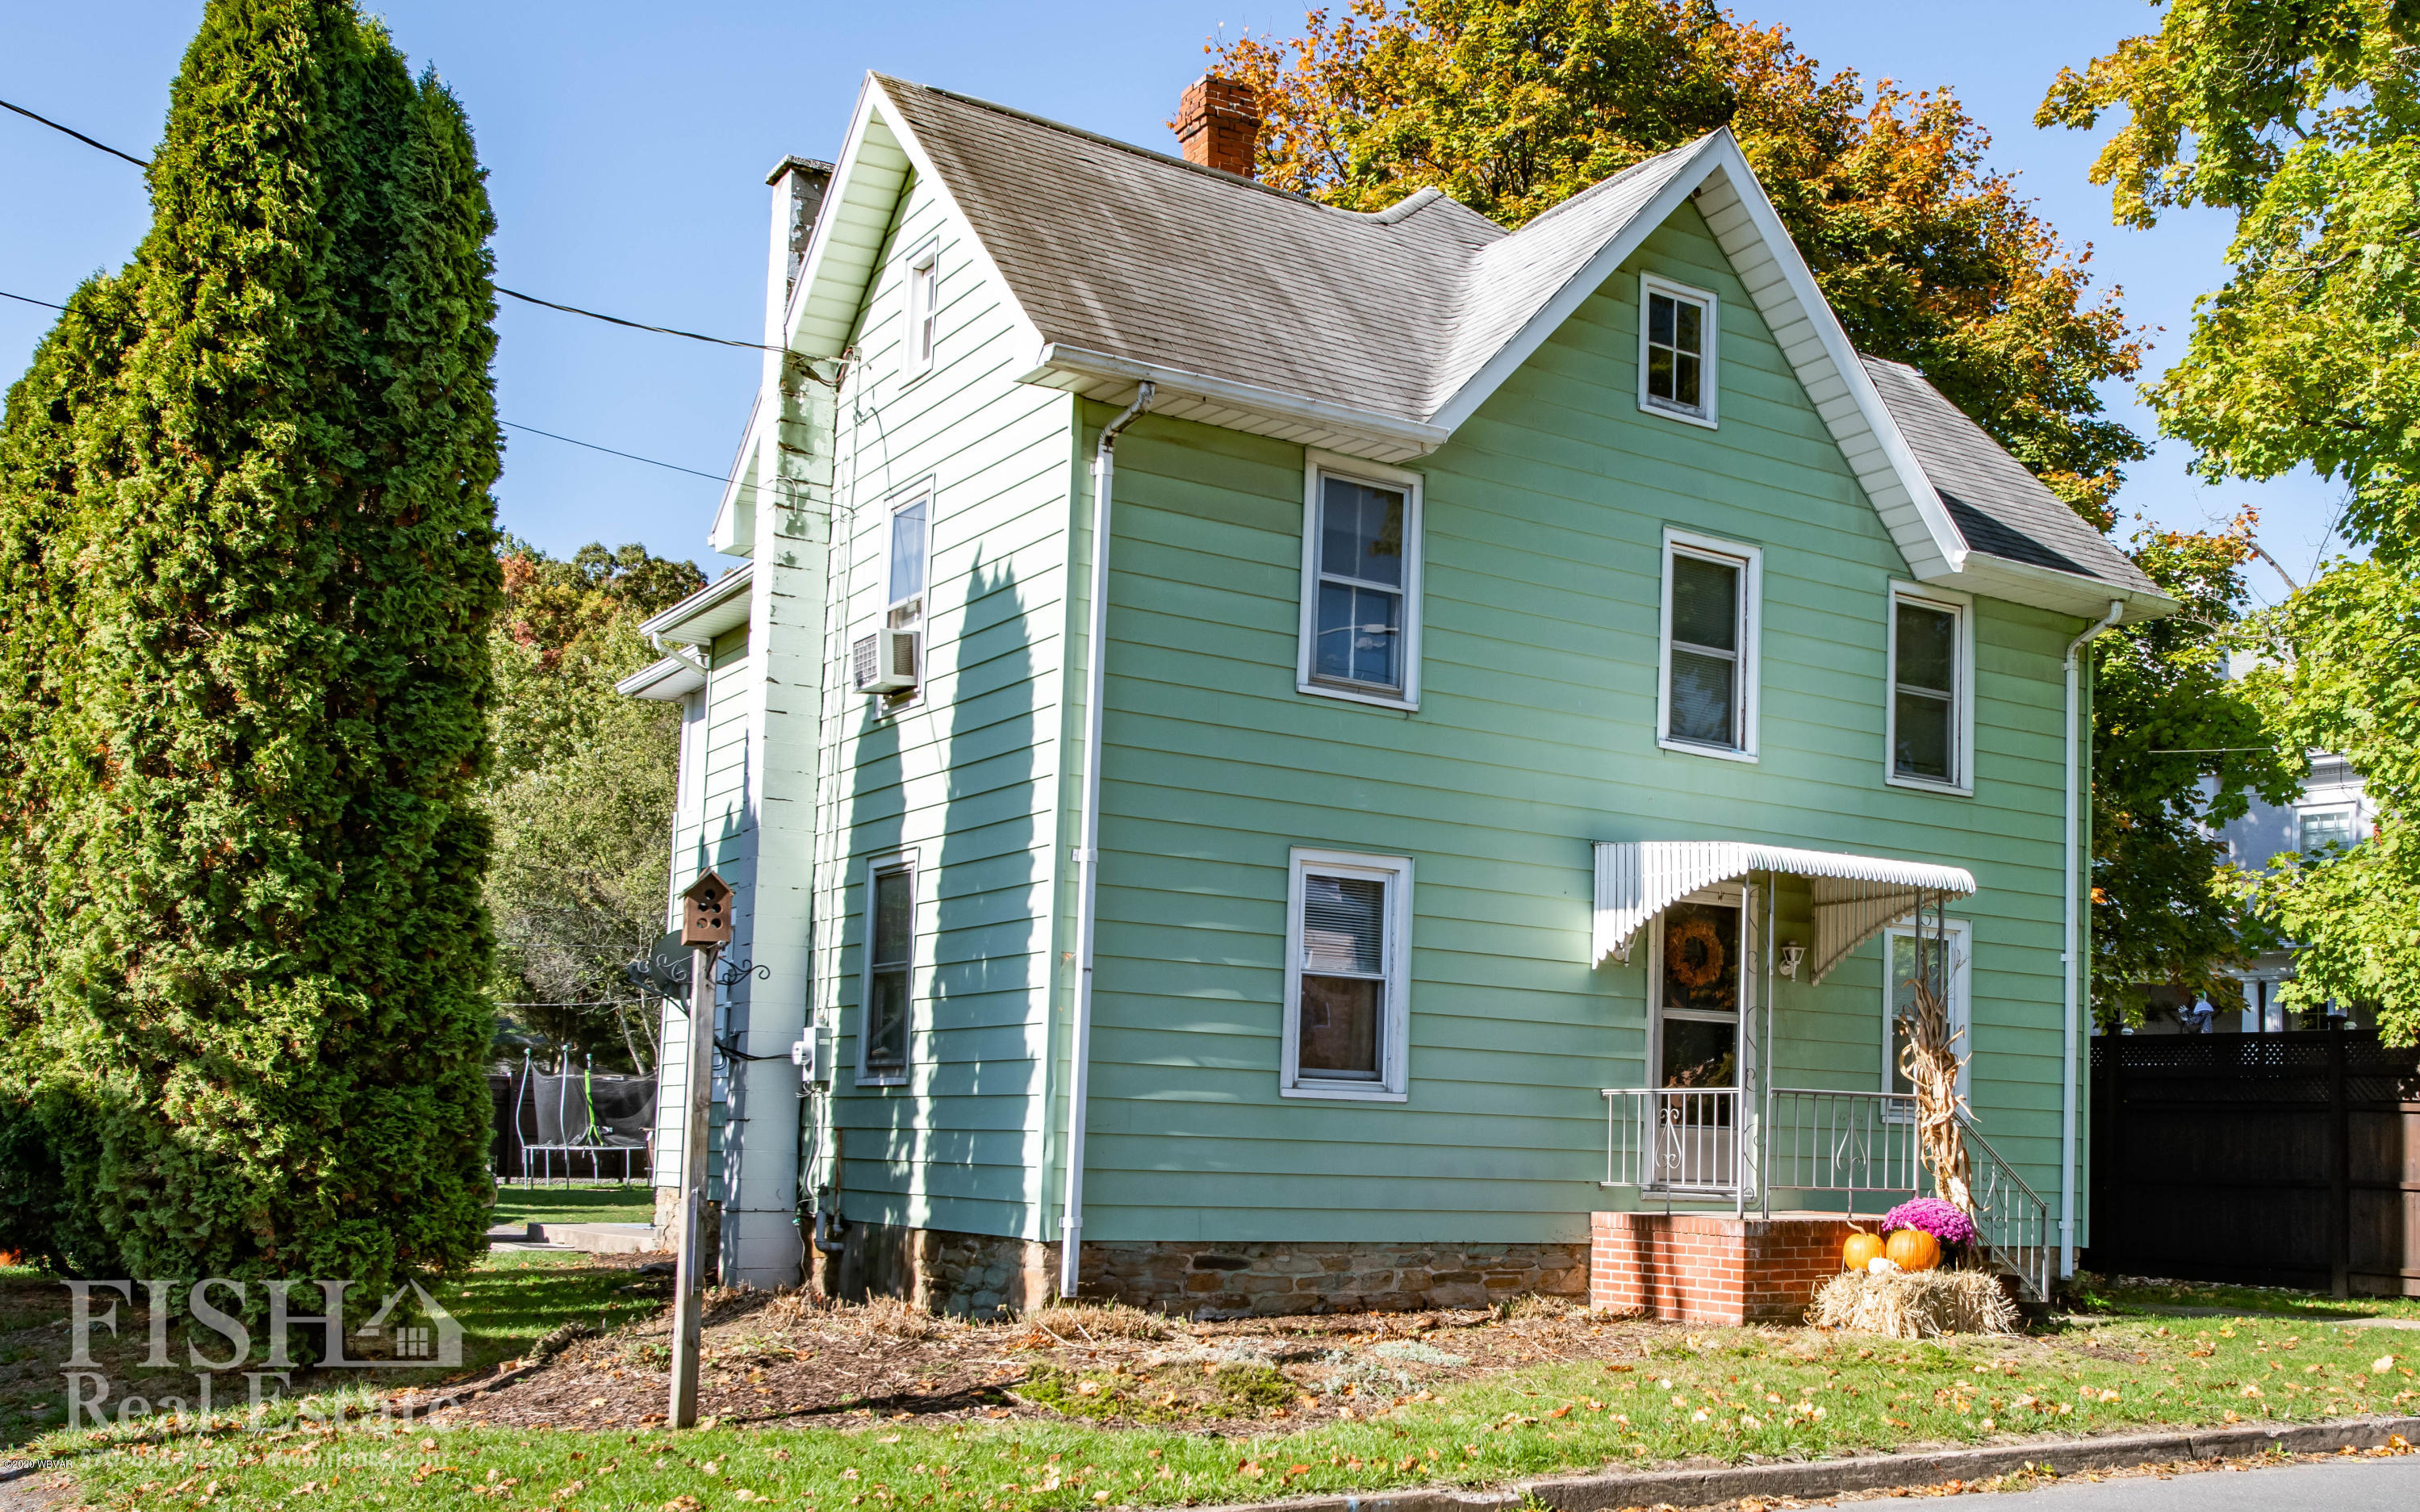 1051 PARK AVENUE, Woolrich, PA 17779, 4 Bedrooms Bedrooms, ,2 BathroomsBathrooms,Residential,For sale,PARK,WB-91351